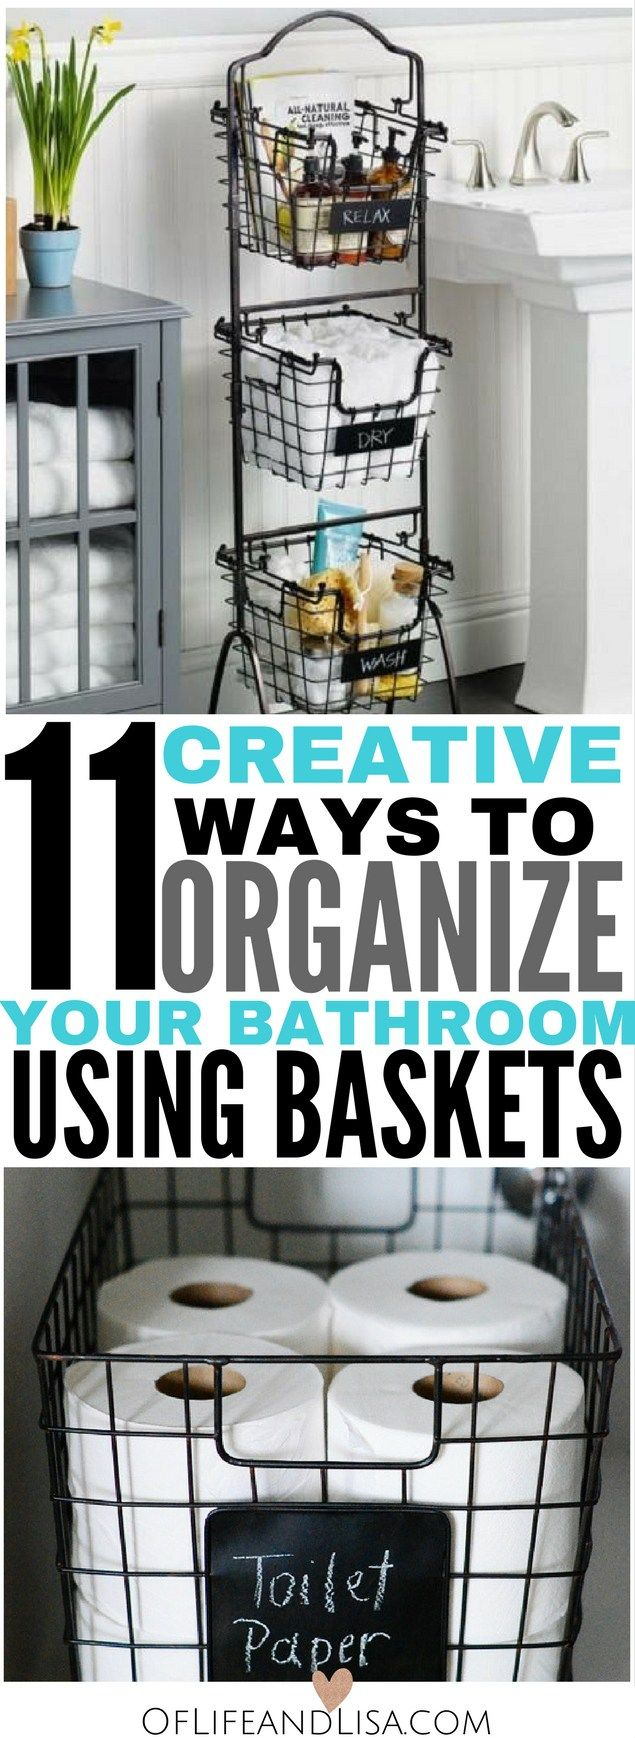 Here are 11 insanely creative bathroom storage ideas using simple baskets. Come check it out!